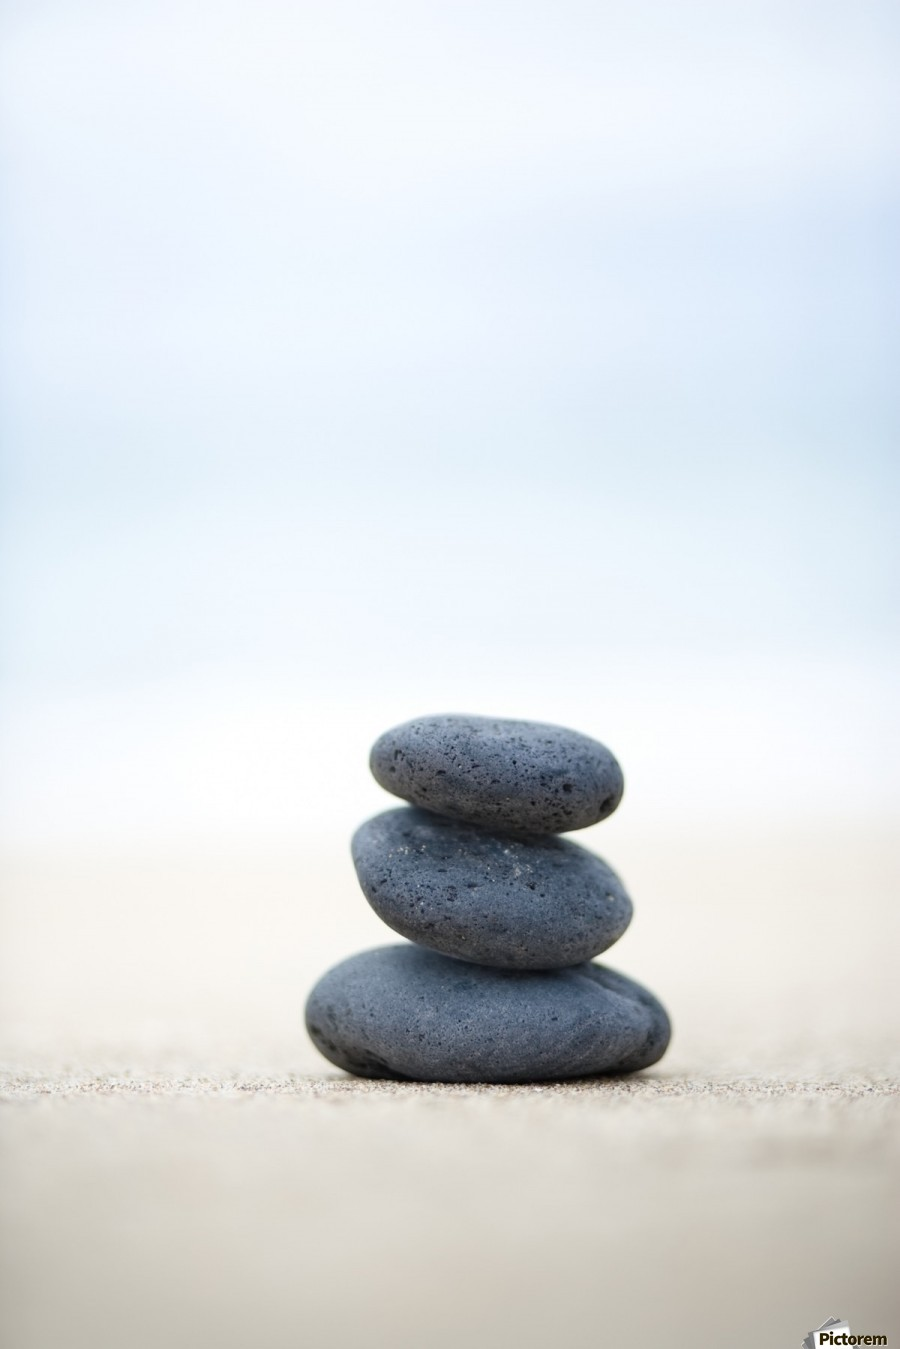 Stack Of Stones On Sand, Selective Focus.  Print